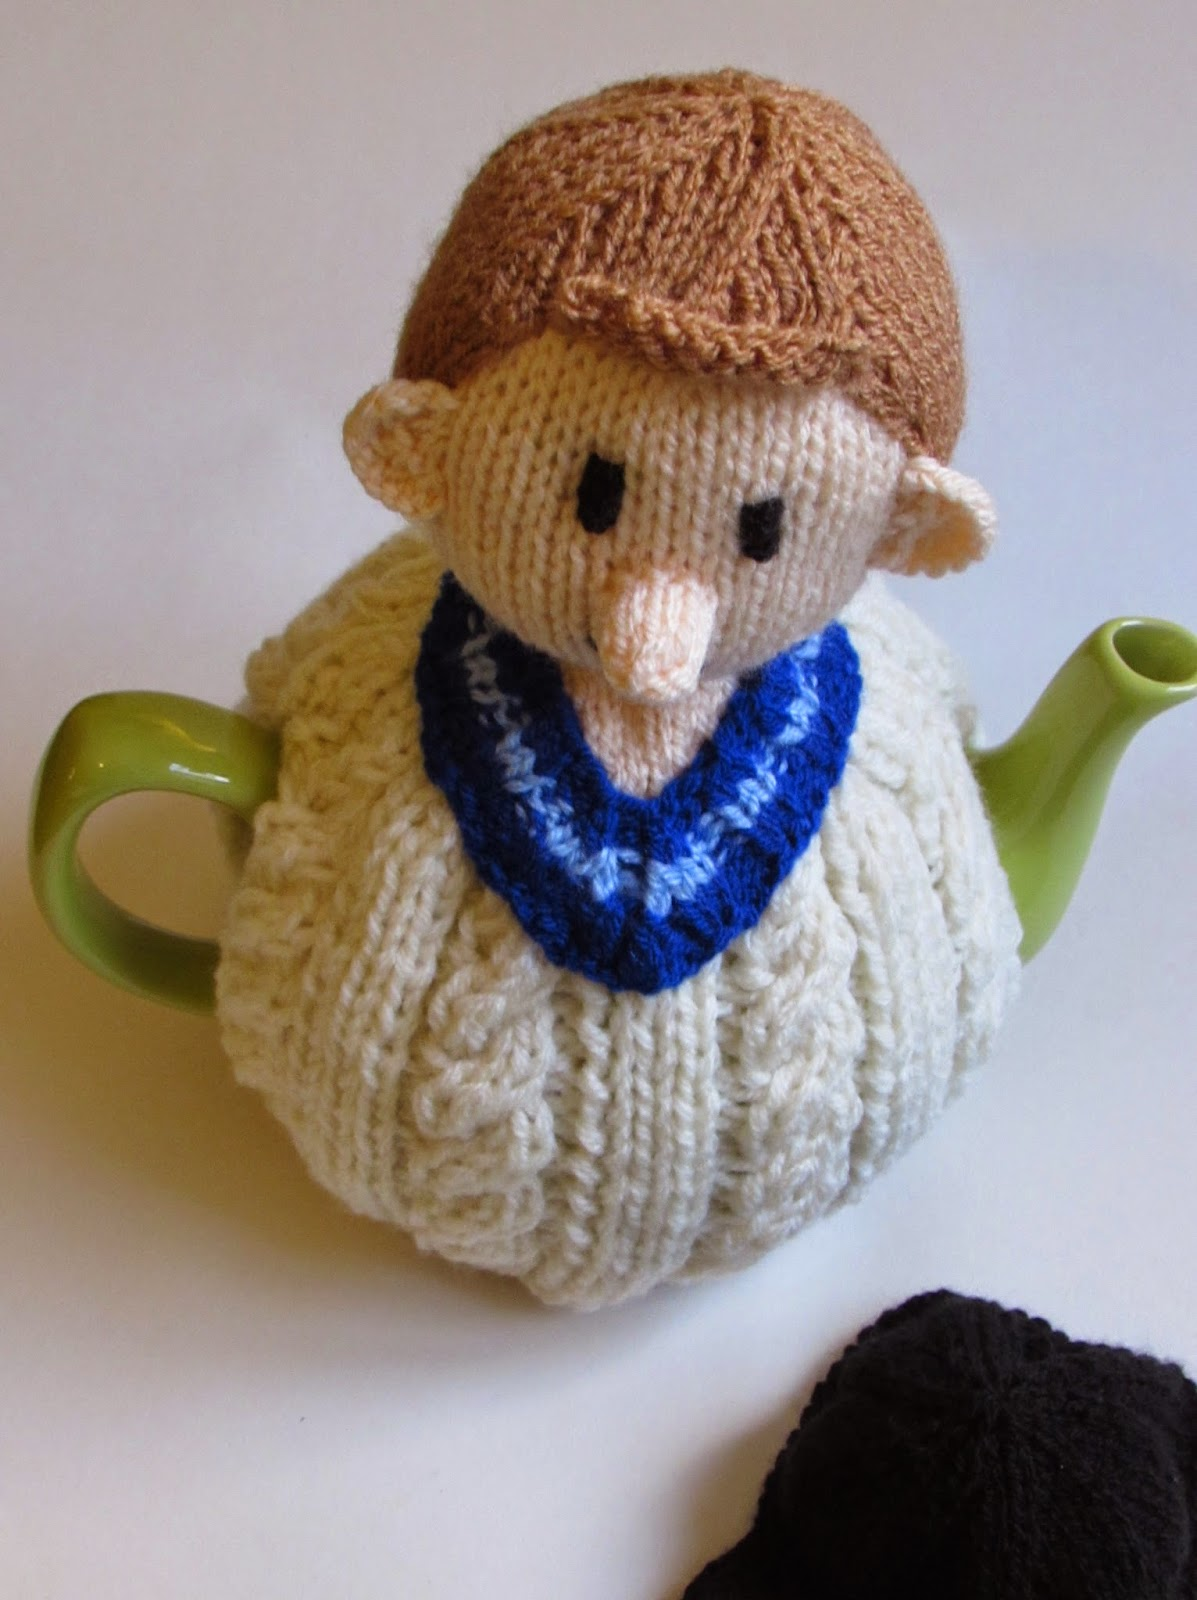 Cricketer tea cosy top view